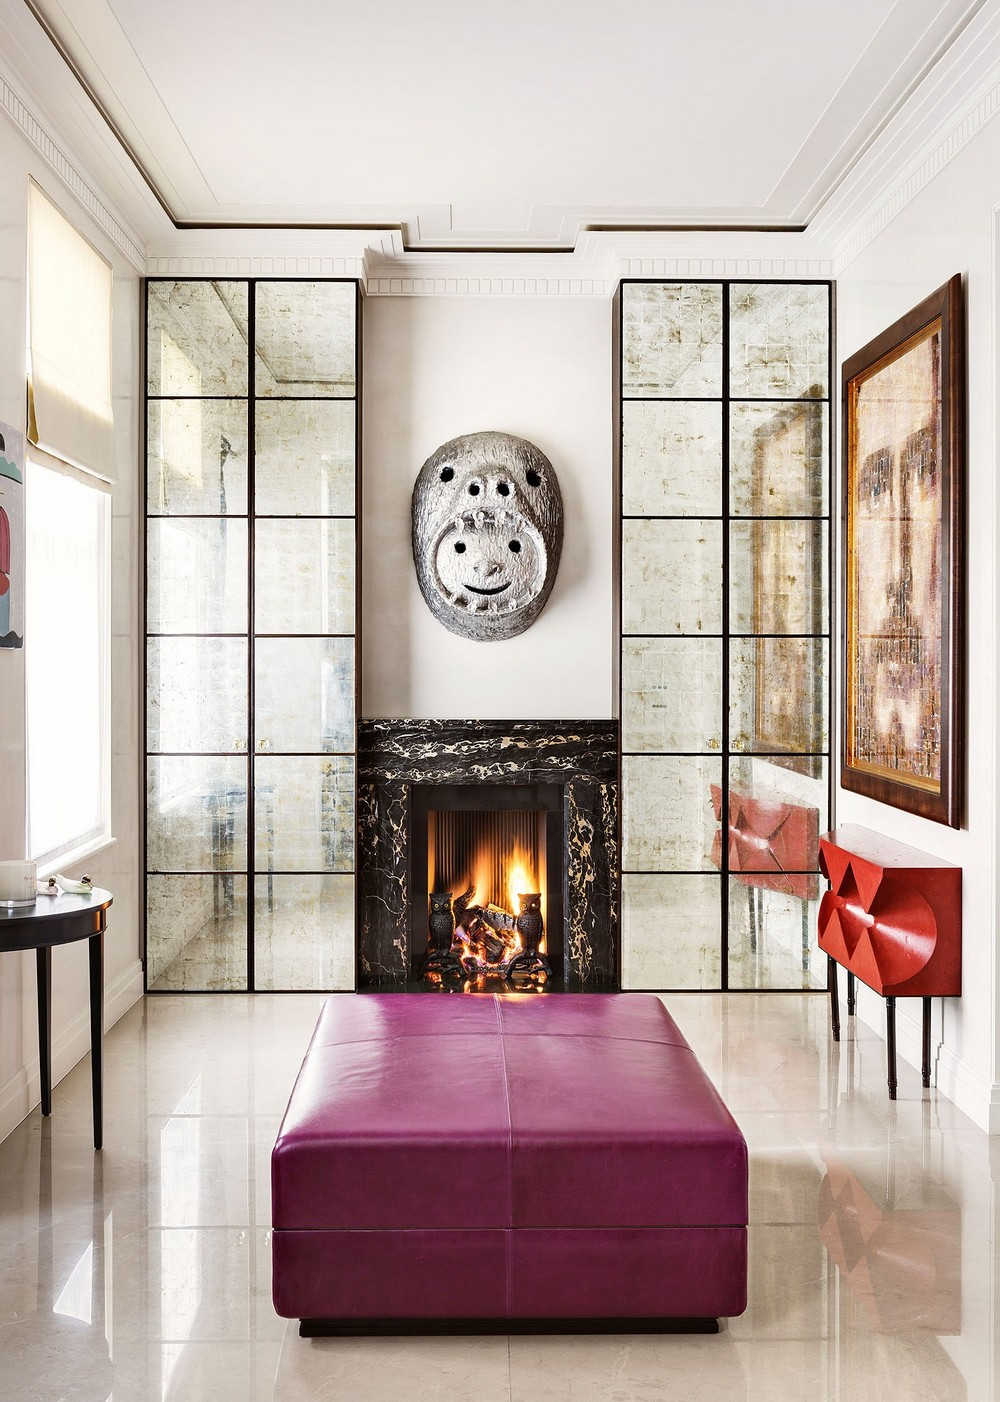 Francis Sultana's Most Dazzling And Iconic Interior Design Projects francis sultana Francis Sultana's Most Dazzling And Iconic Interior Design Projects family home belgravia